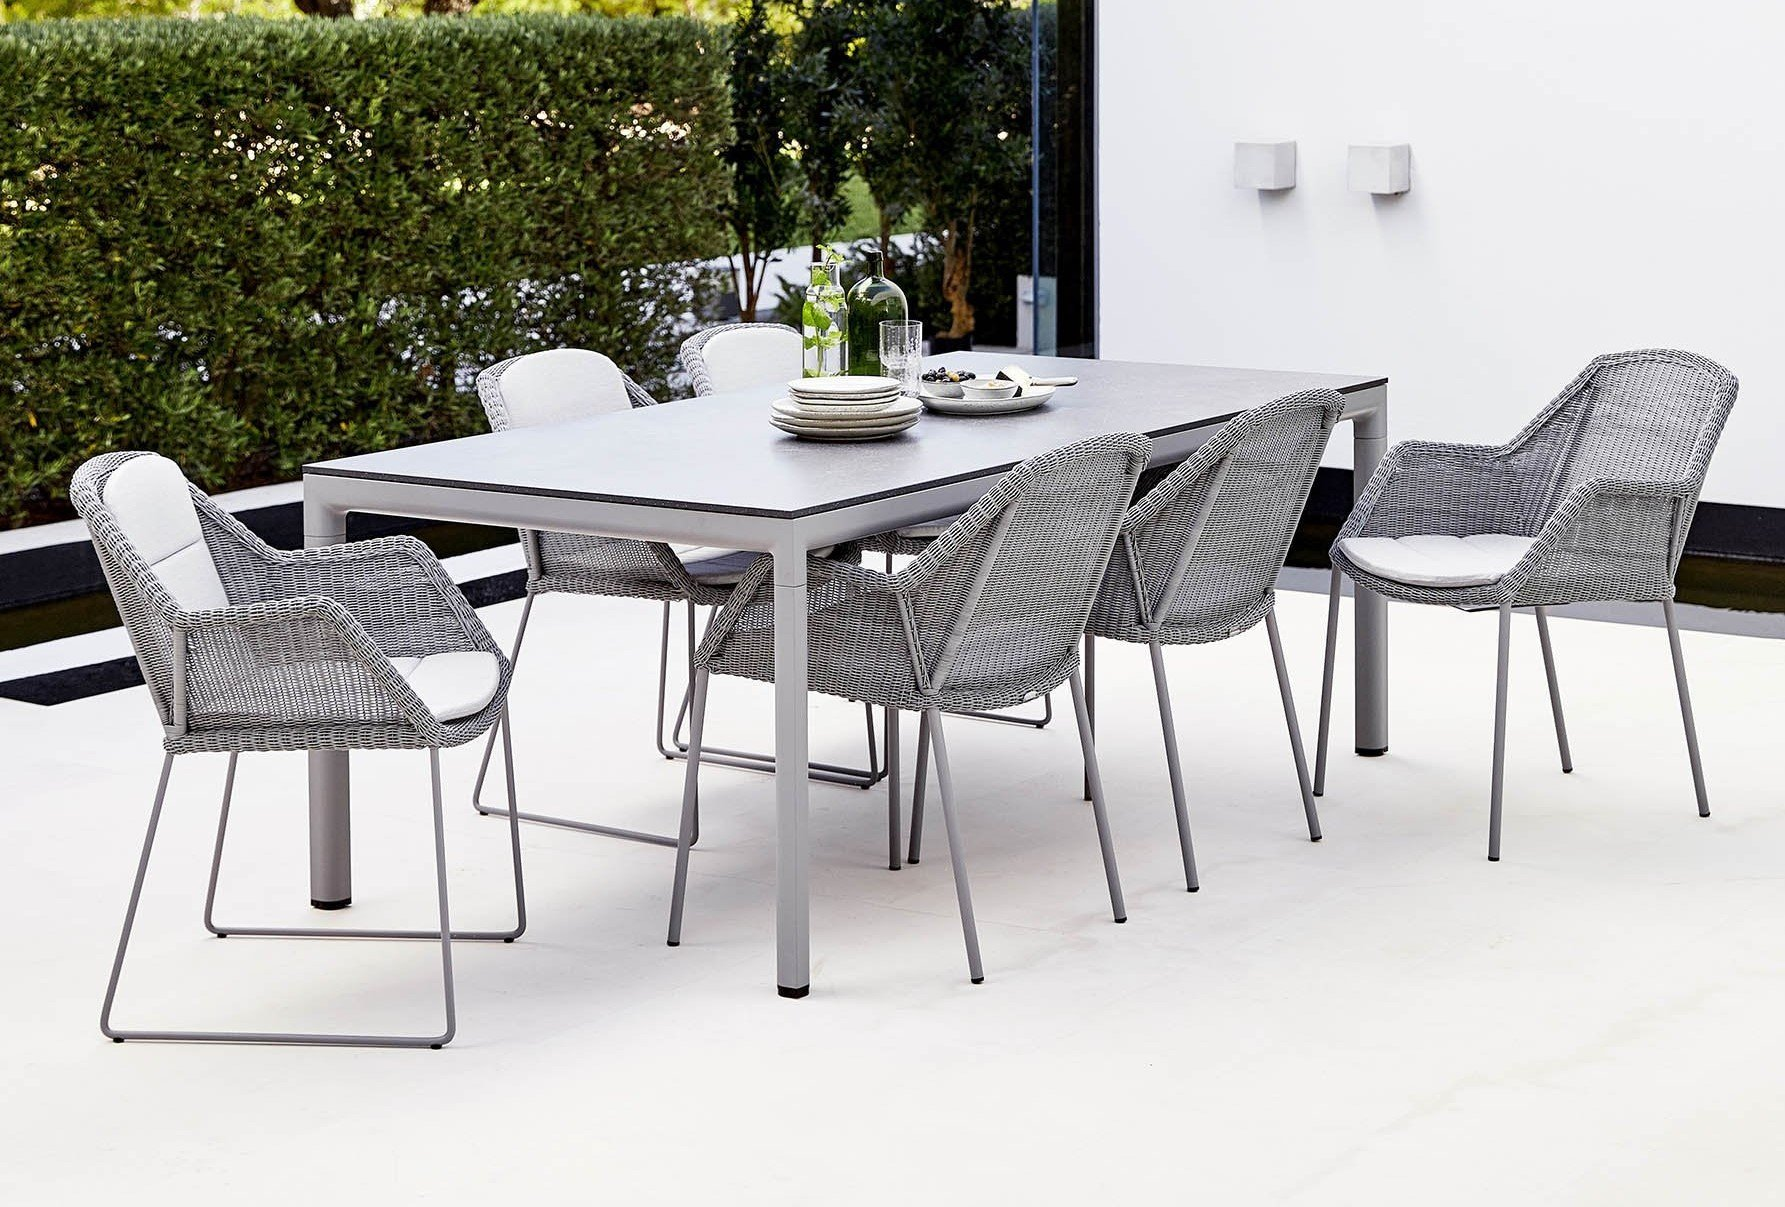 Breeze Dining Chair from Cane-line, designed by Strand+Hvass